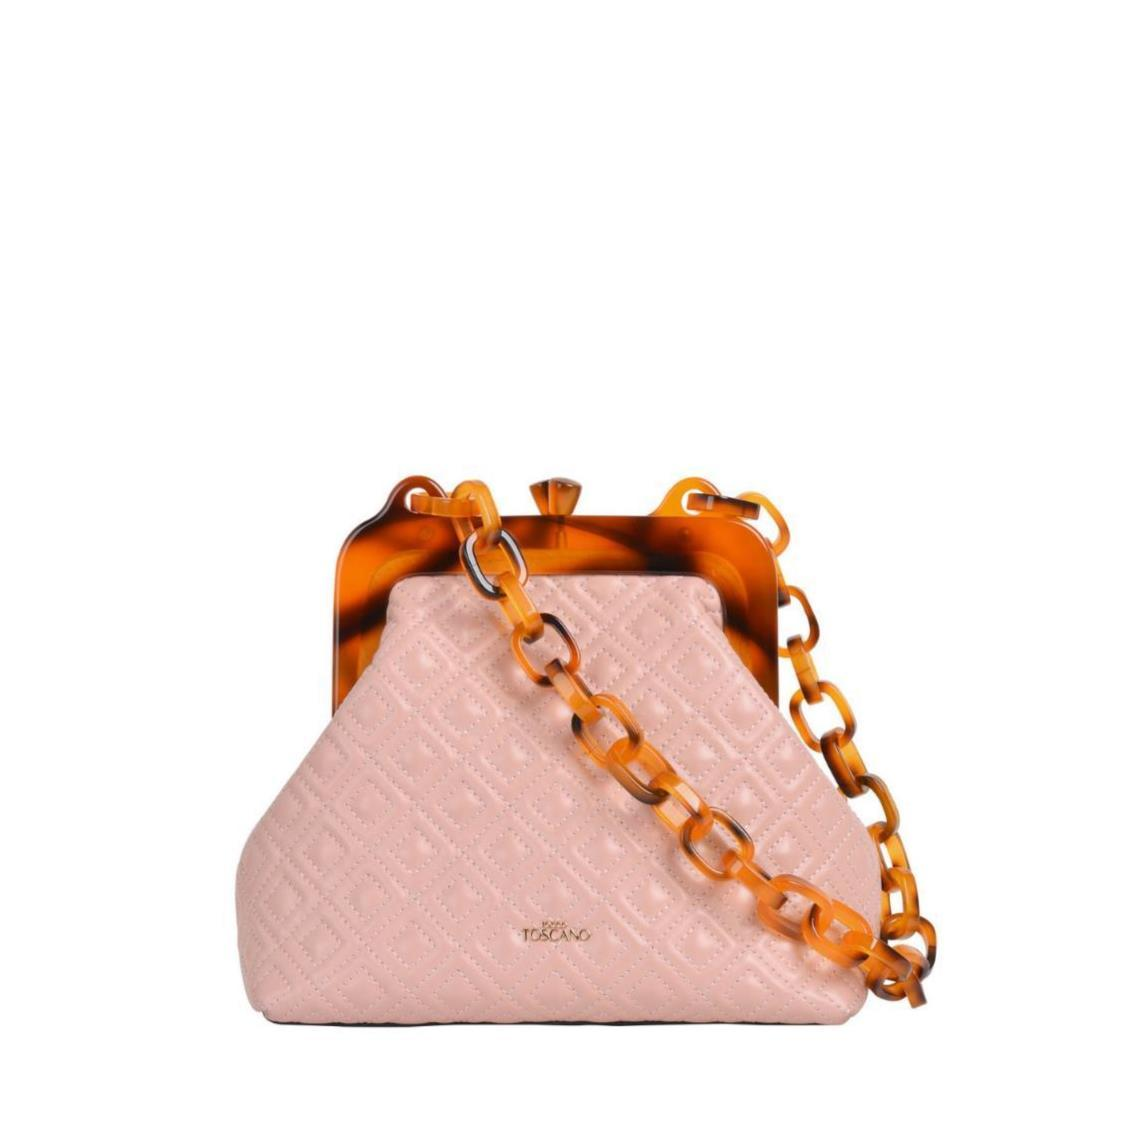 Hepburn Quilted Leather Shoulder Bag with Acrylic Chain